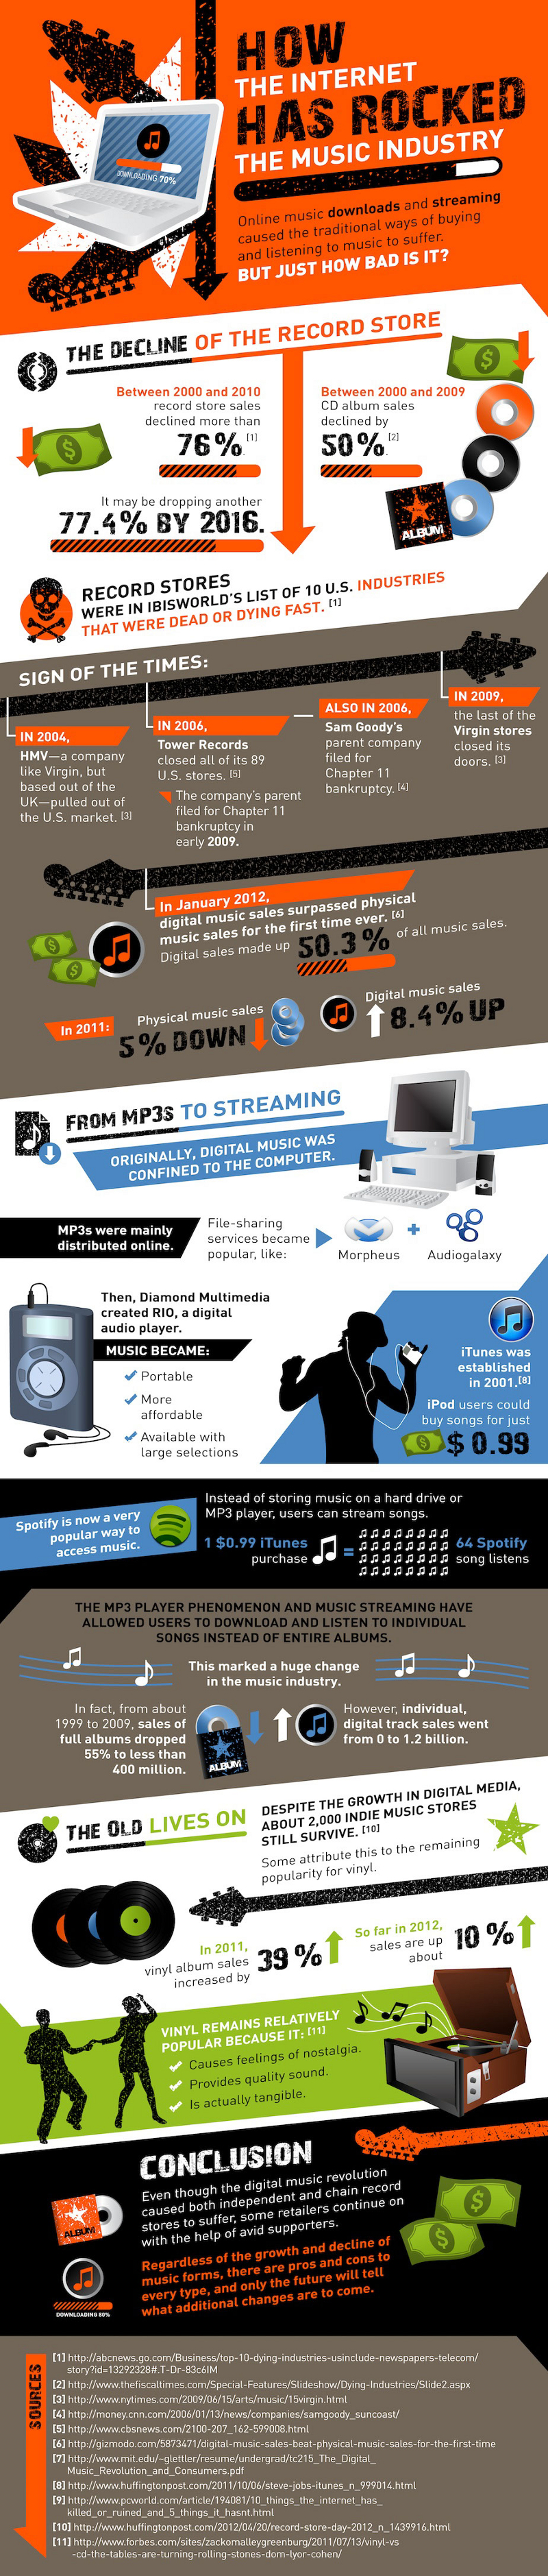 Influence of Internet on Music Industry